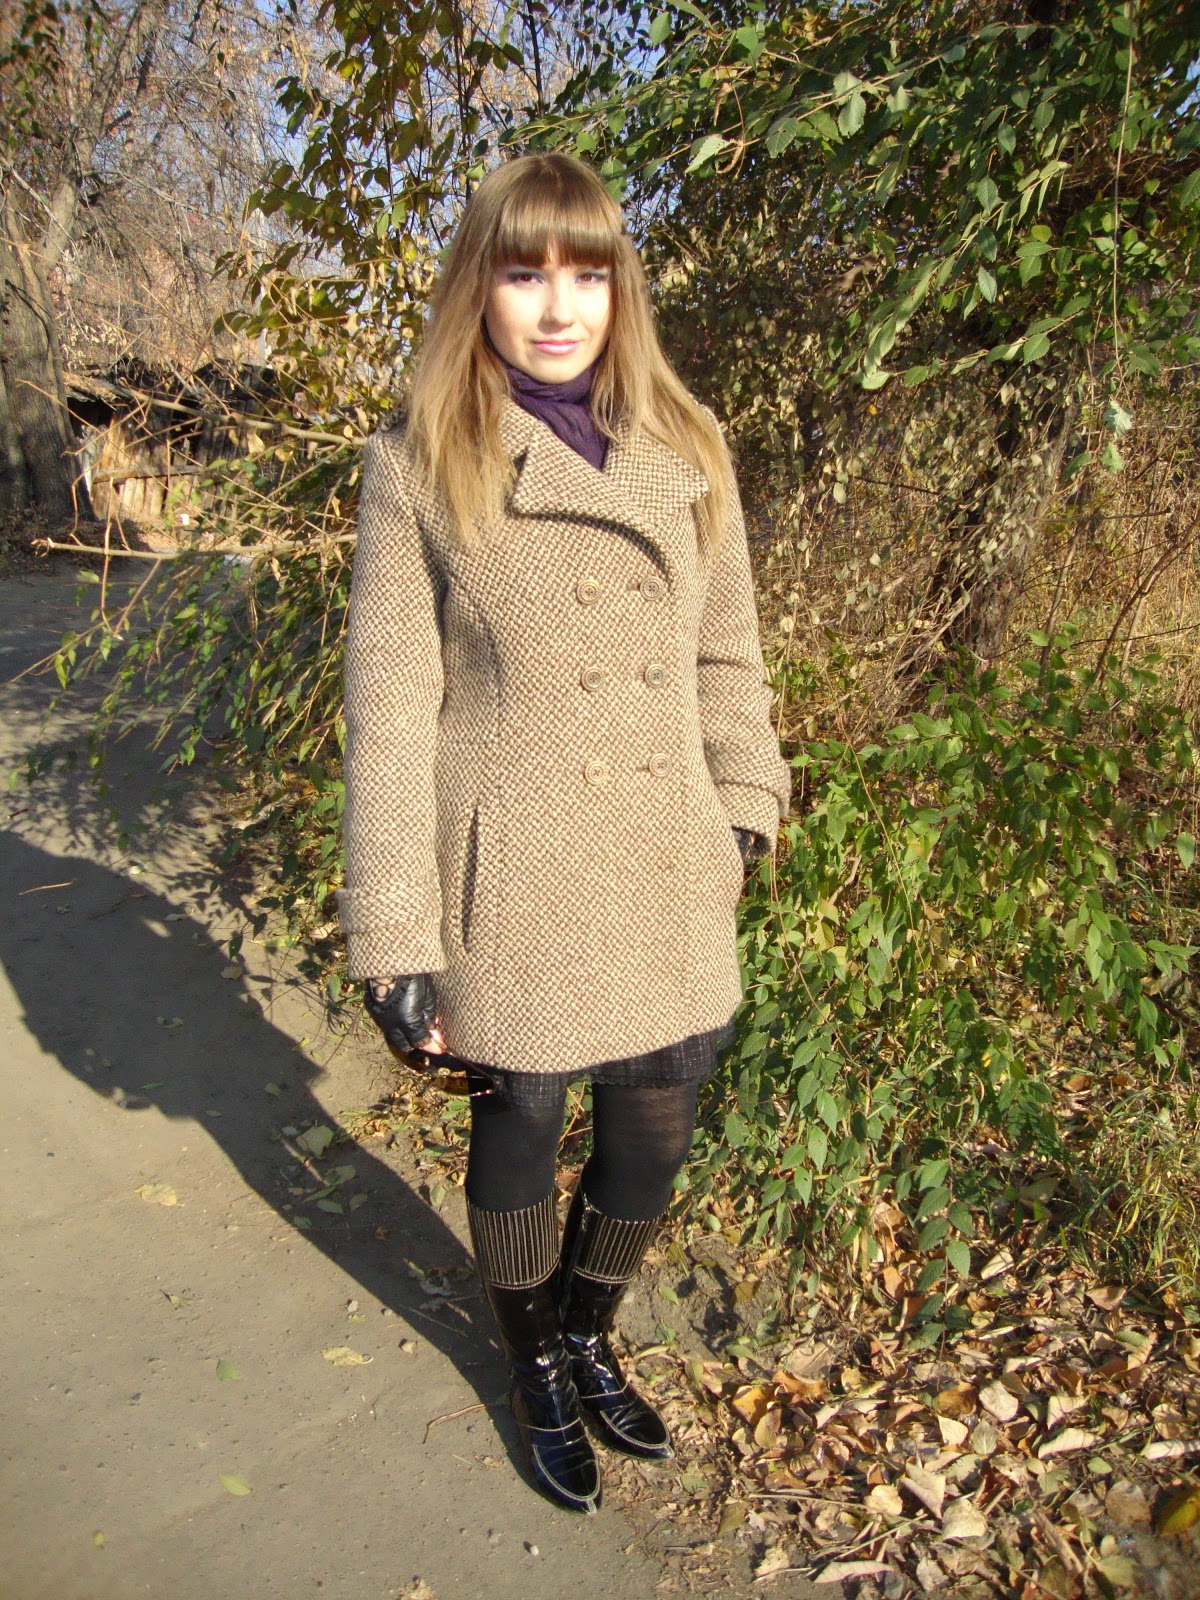 Coat, Handmade, Outfits, Sewing, Boots, Leggings, Skirts, Fingerless gloves, ASOS, Lisette